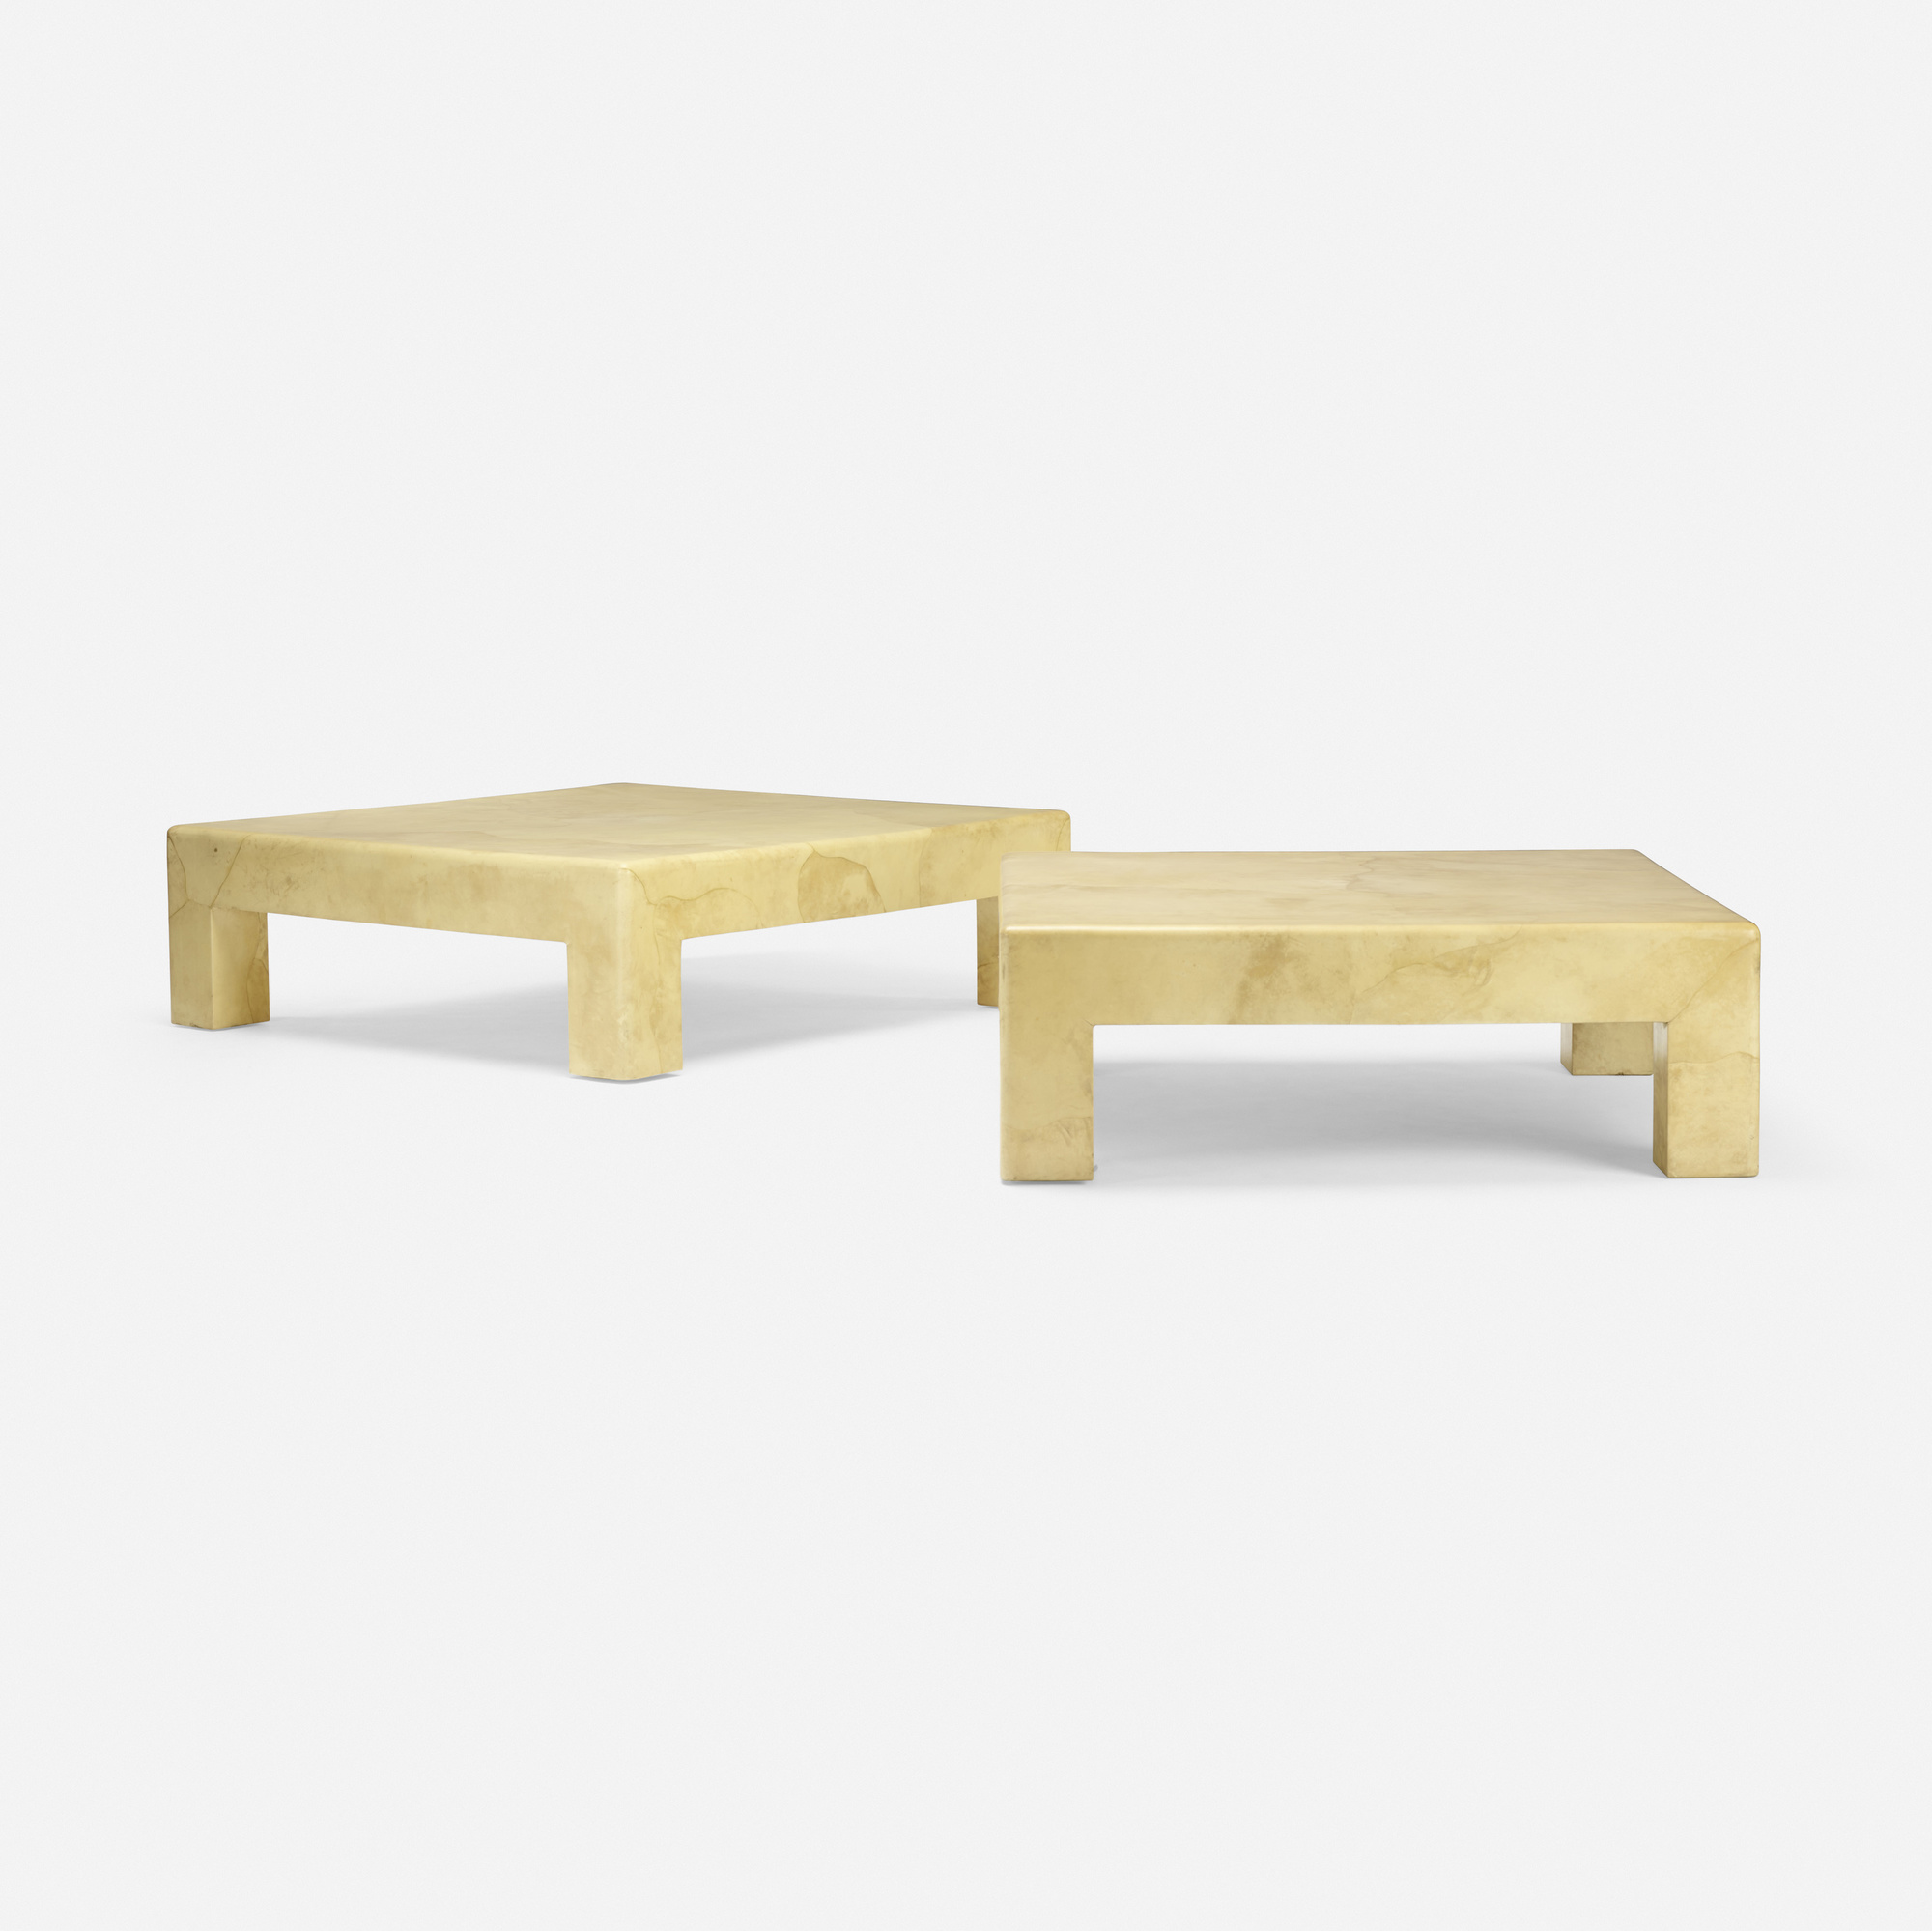 129: Karl Springer / Parsons tables, pair (2 of 3)